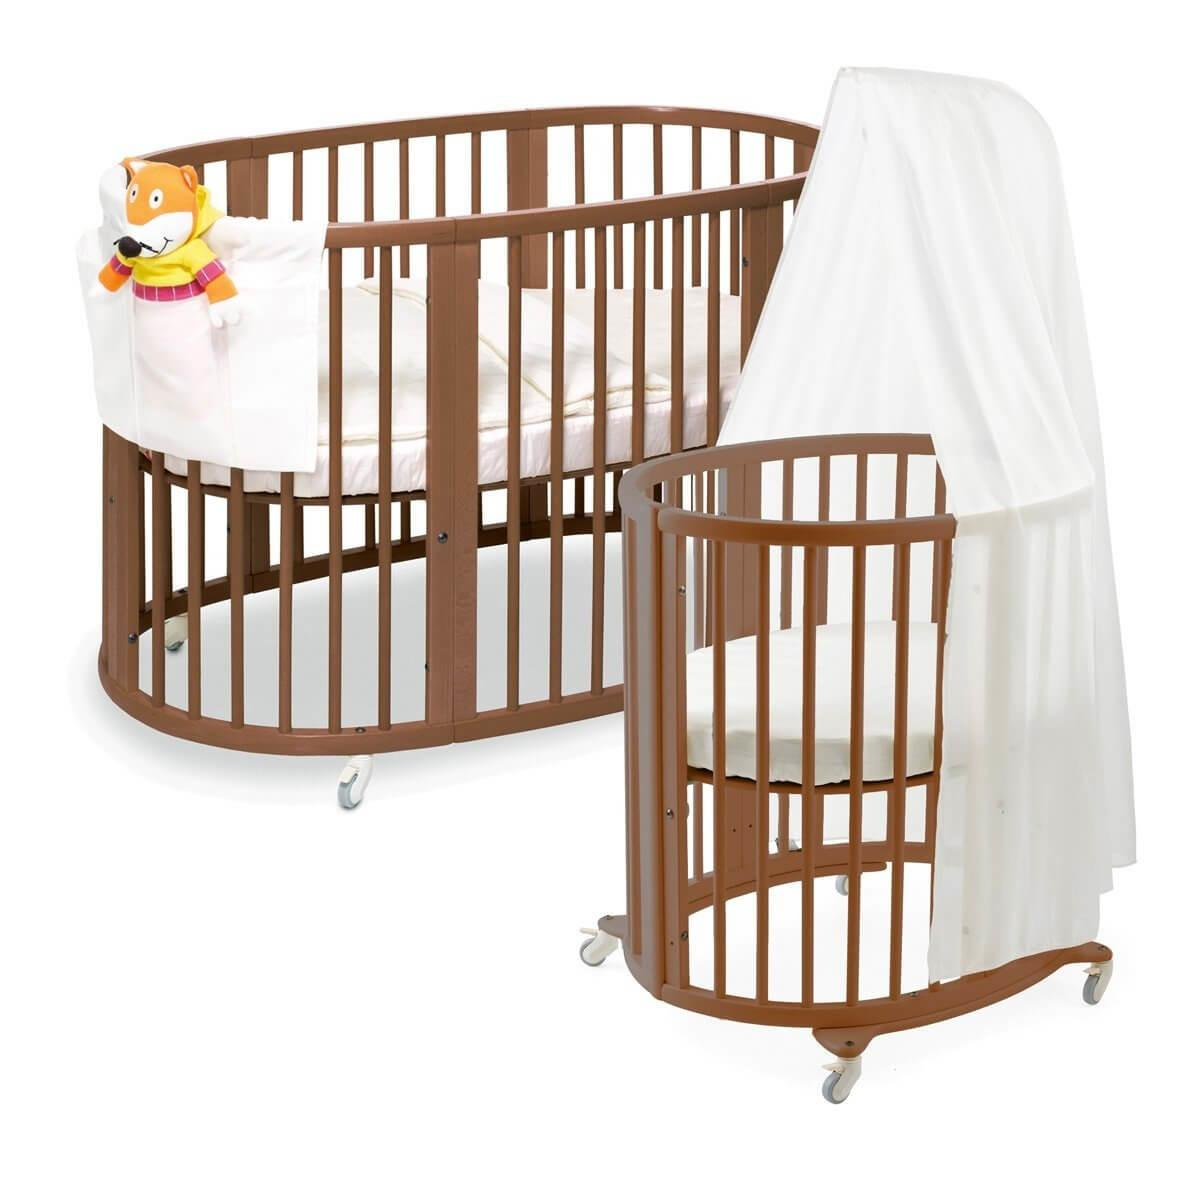 Beautiful Oval Round Baby Cribs Unique Nursery